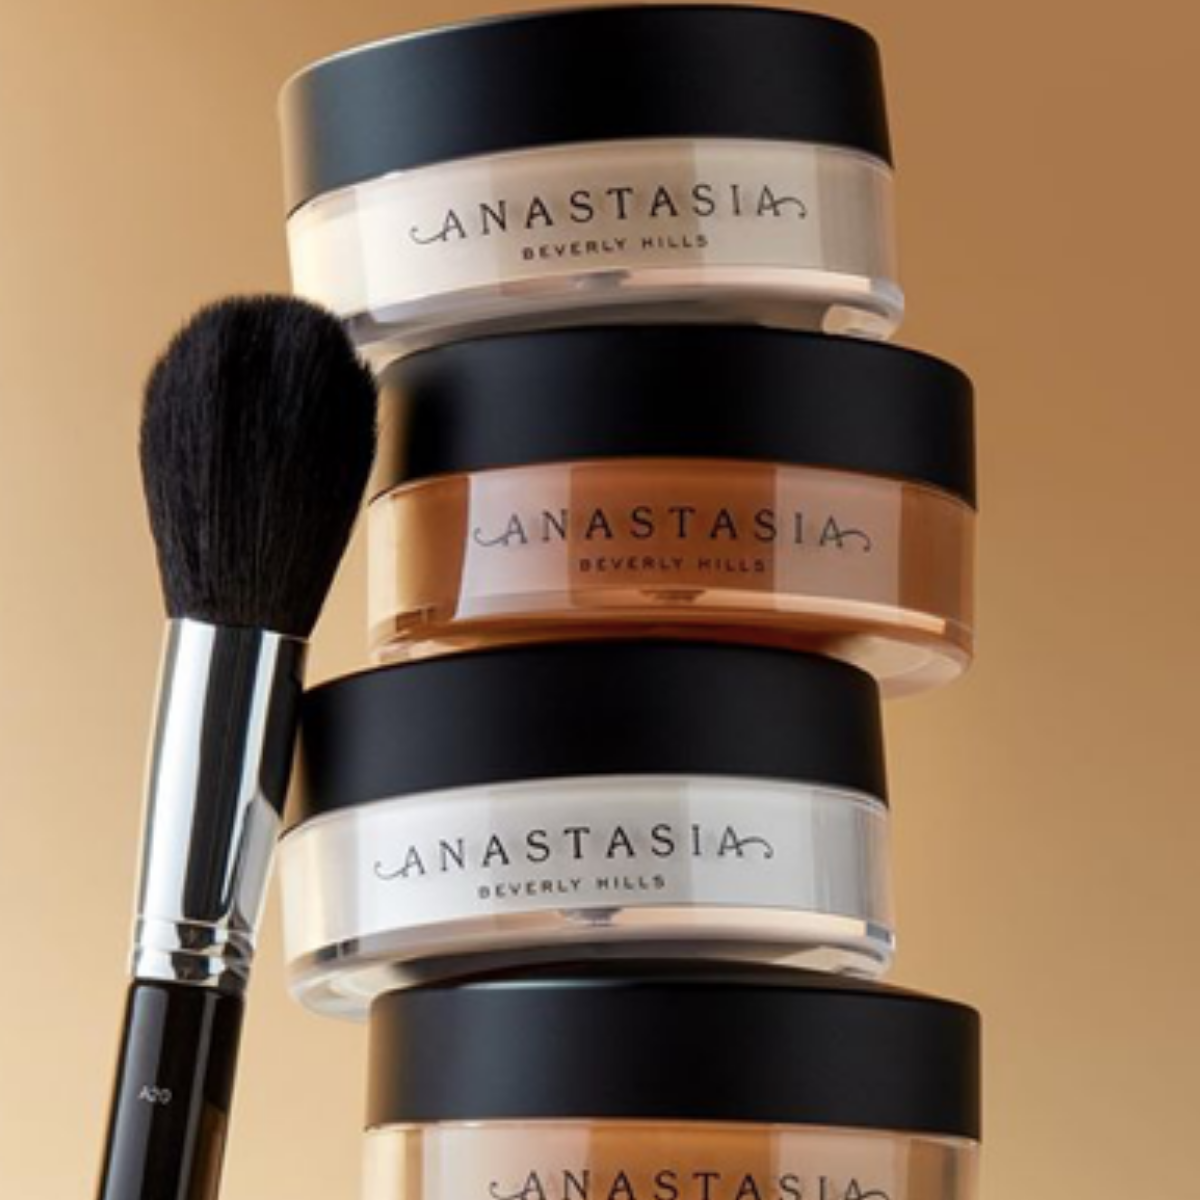 Anastasia Beverly Hills Loose Setting Powder helps to control oil and does not dry the under eyes. Image source:  @Anastasiabeverlyhills